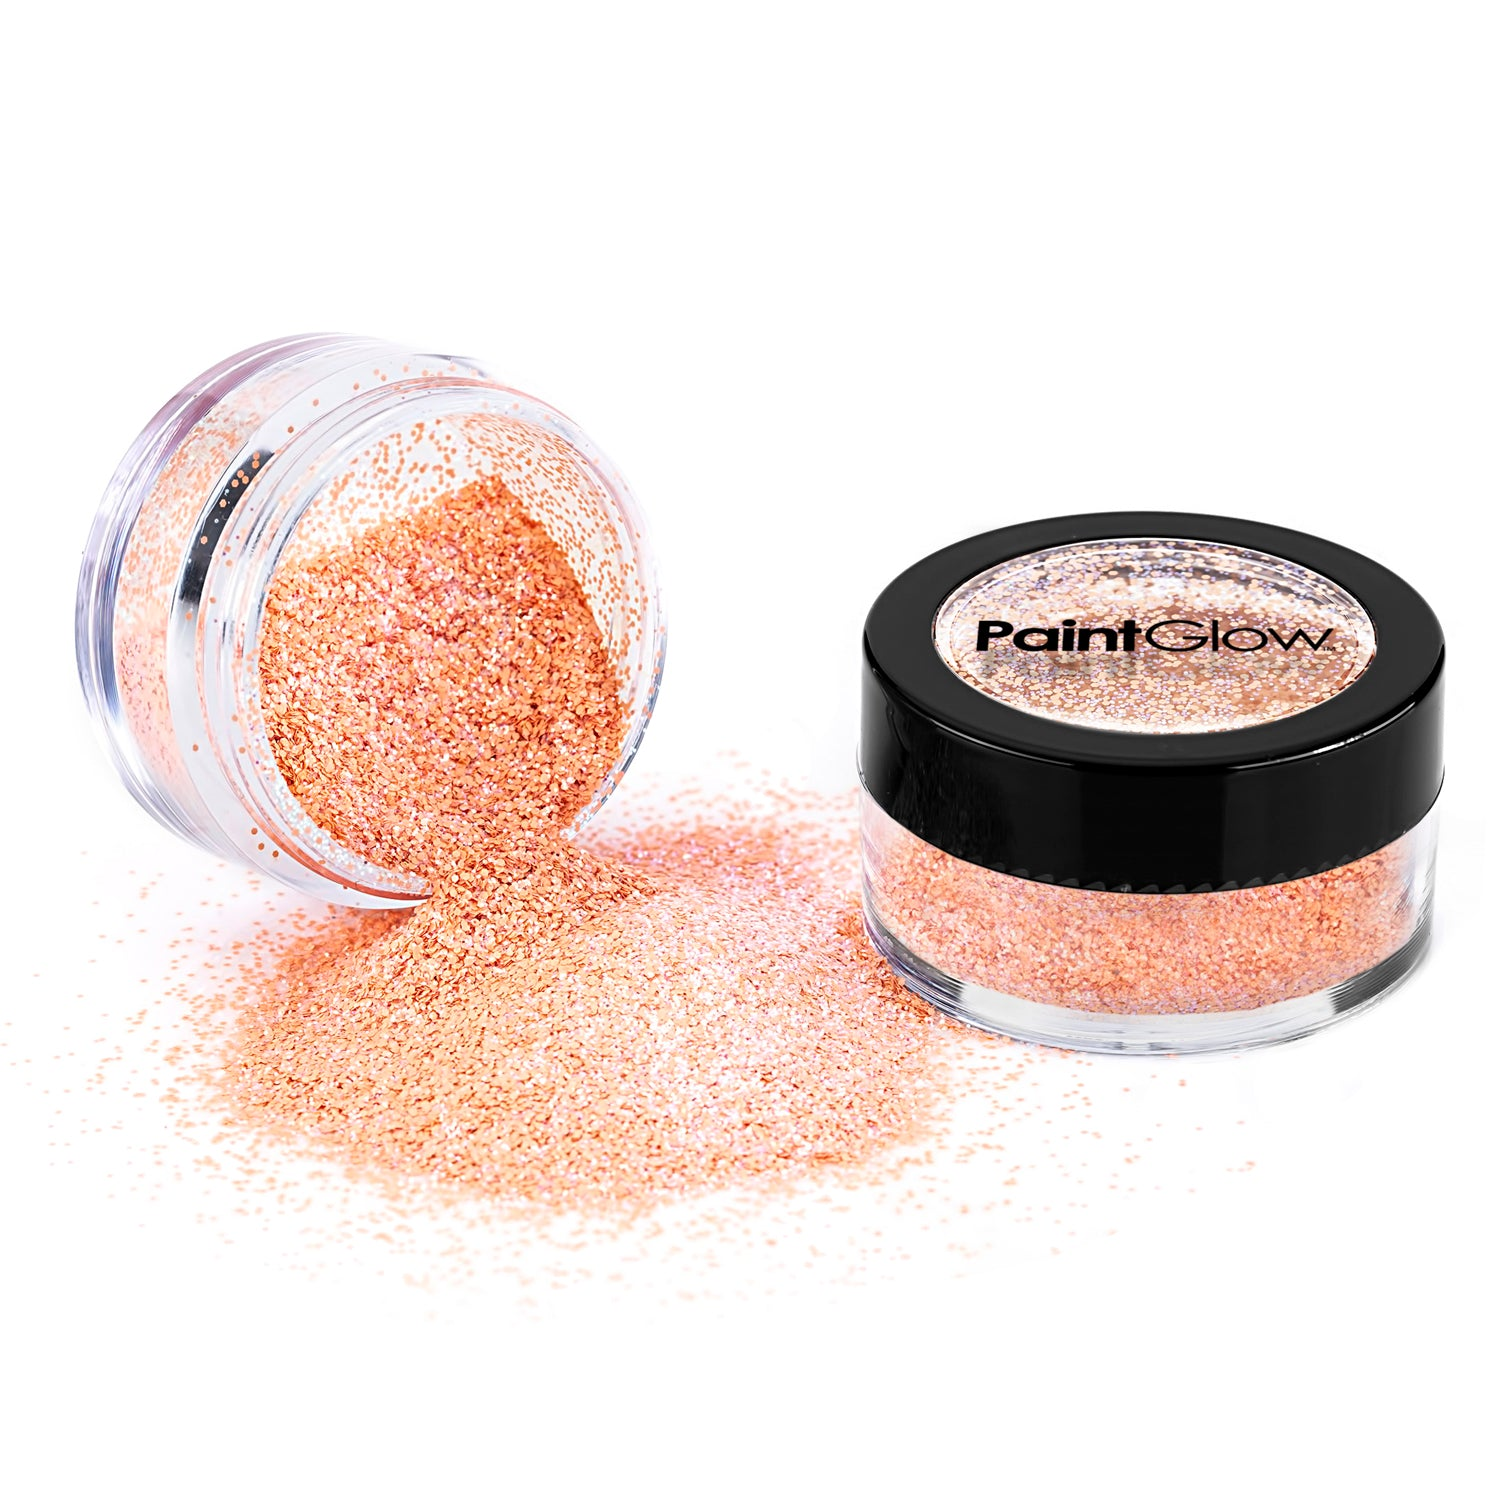 PaintGlow Candy Pastel Iridescent Glitter by PaintGlow – Vegan Cosmetic Glitter for Face, Body, Nails, Hair and Lip, iridescent glitter, festival glitter, hair glitter, nail glitter (Jelly Bean)